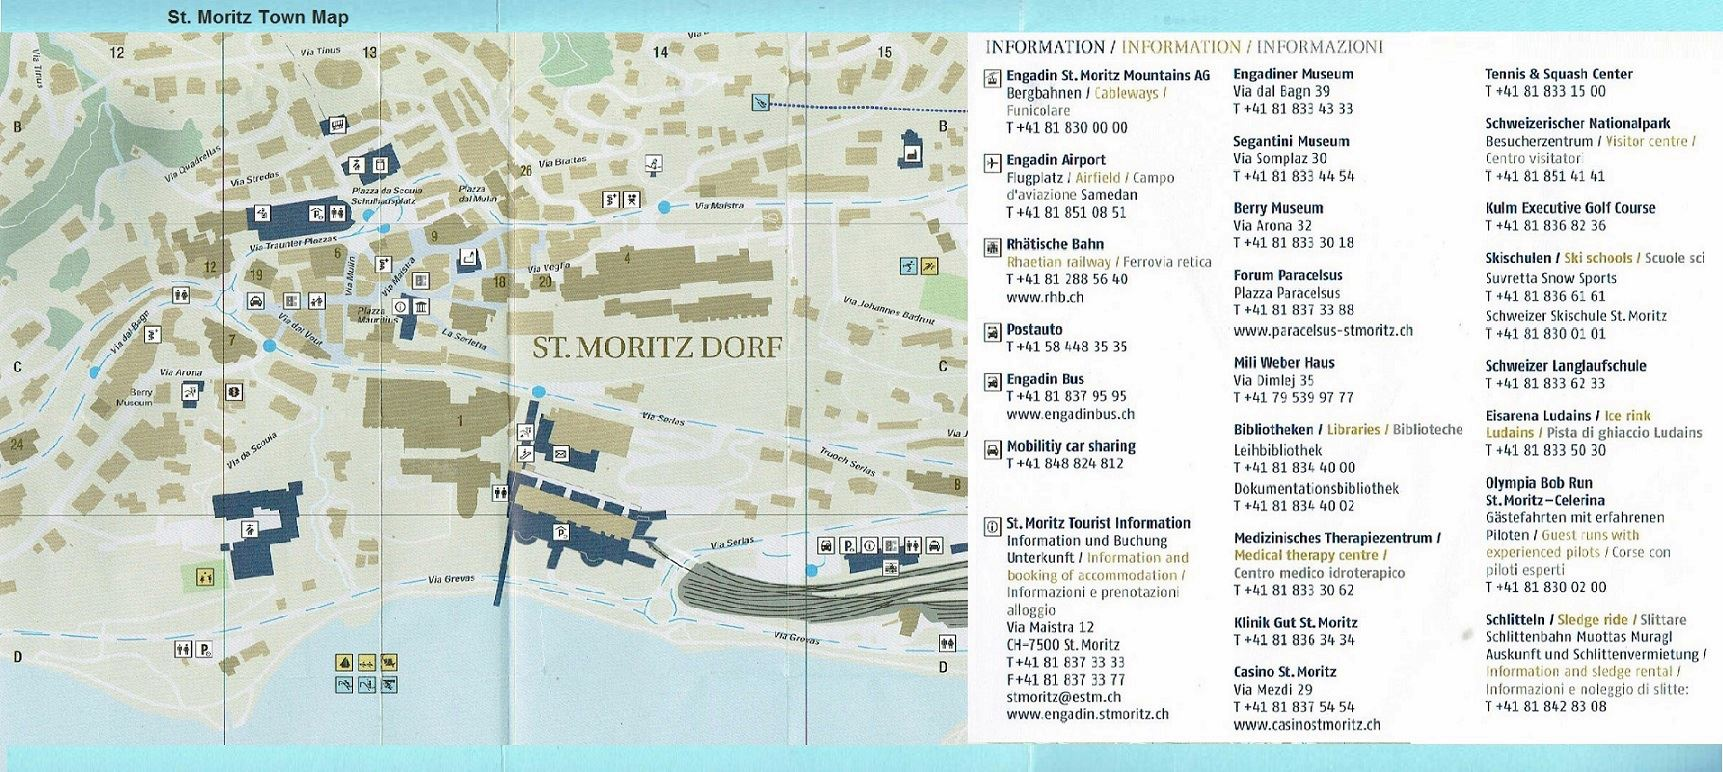 Large Sankt Moritz Maps for Free Download and Print High